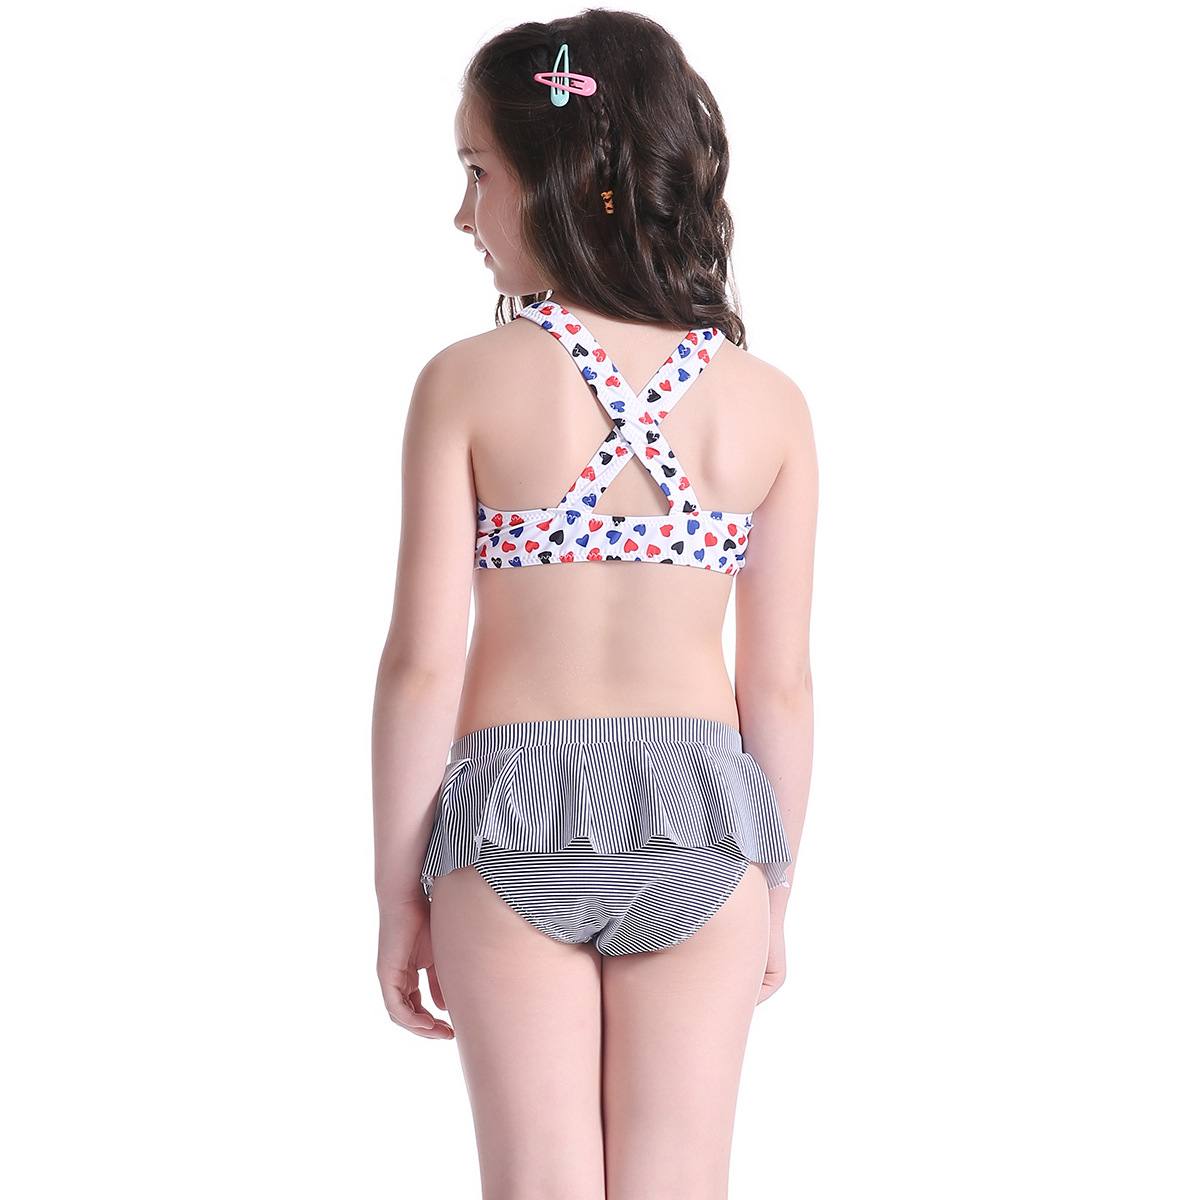 2018 New Pop Kids Swimsuit Children Swimwear Kids Summer Two Pieces SetSkirted Swimsuit Girl Bikini Beach Wear Swimsuit